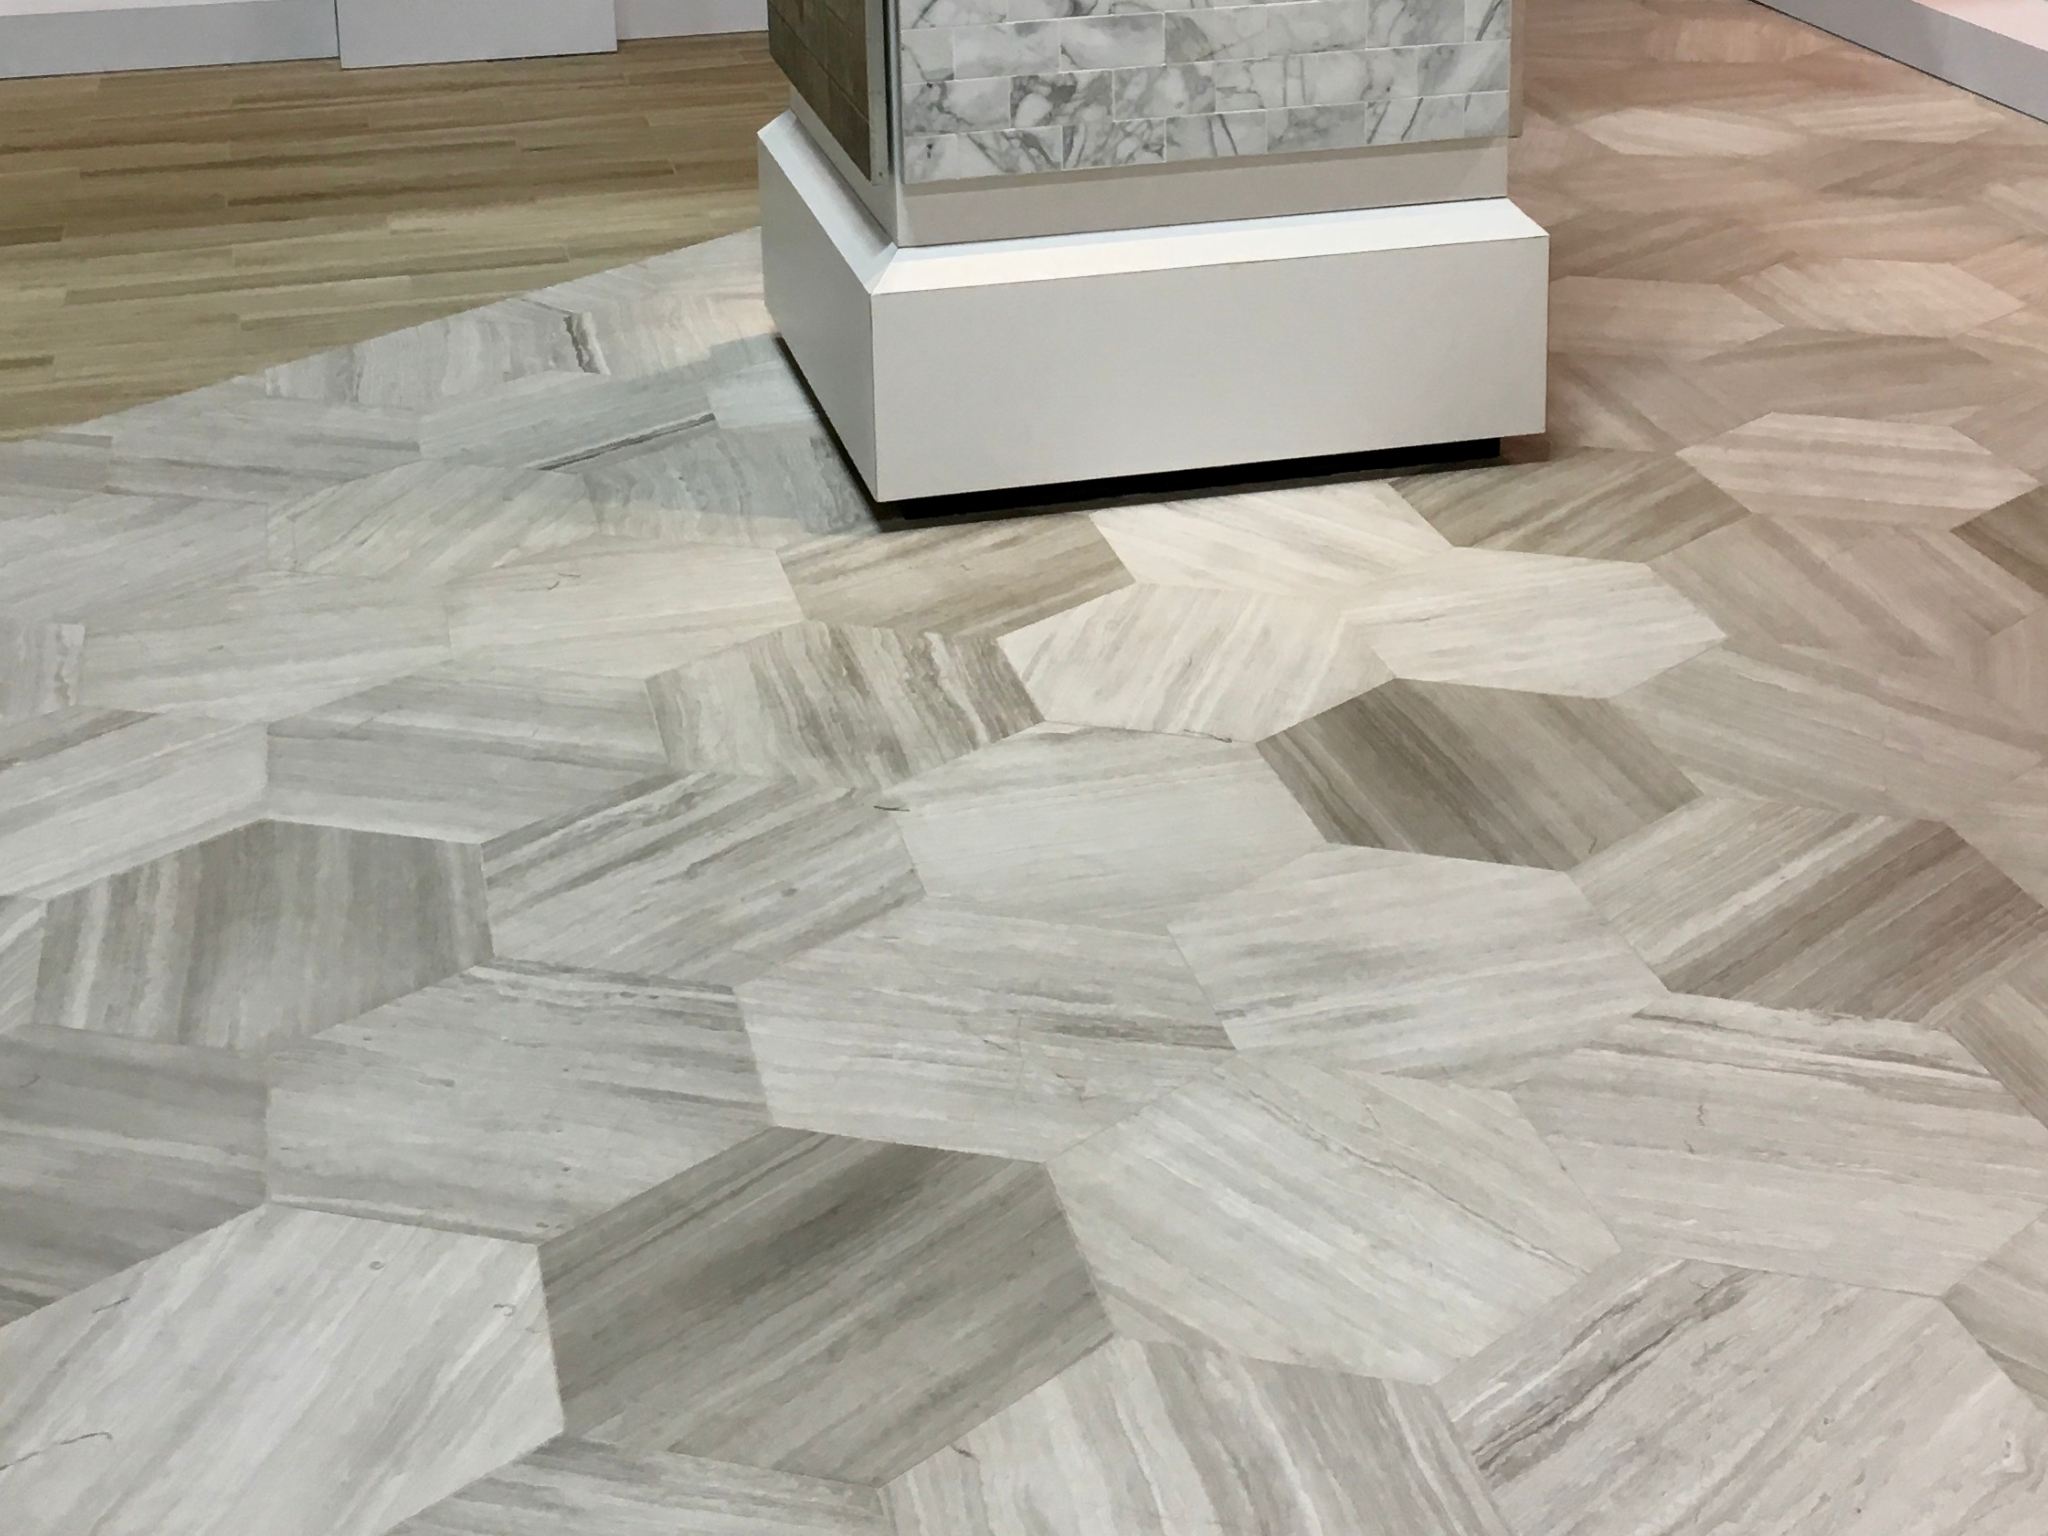 Large hex floor tile daltile 18x20x12 chenille white honed large hex floor tile daltile 18x20x12 chenille white doublecrazyfo Choice Image